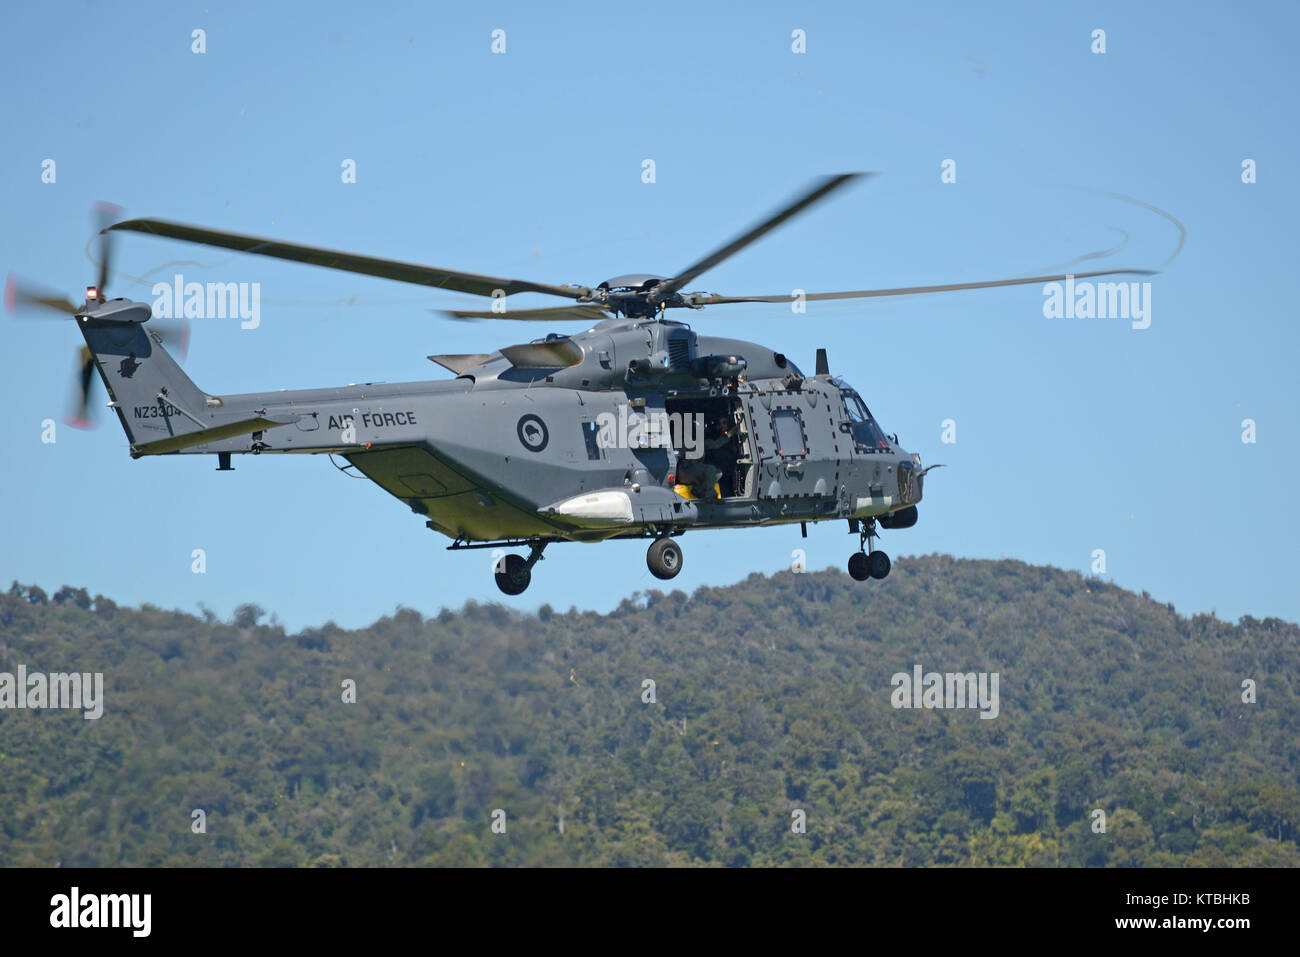 An Air Force NH90 helicopter takes off from Greymouth aerodrome at an open day run by the New Zealand armed forces. - Stock Image